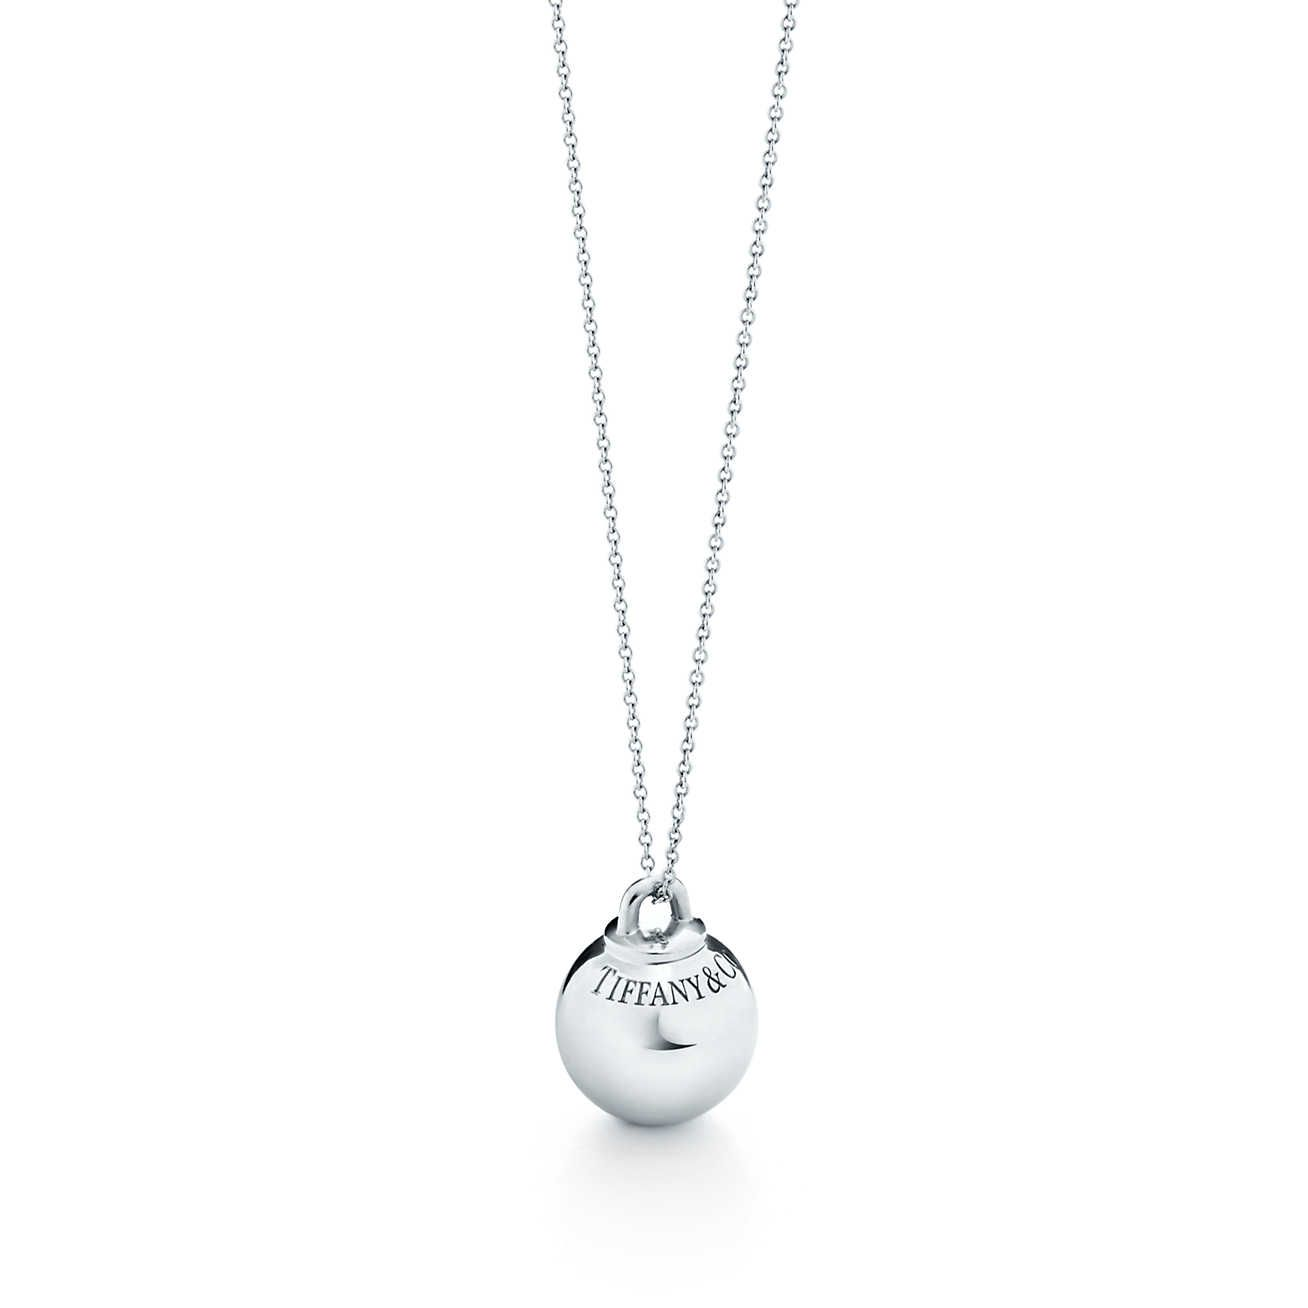 Tiffany hardwear ball pendant jewelery pinterest tiffany tiffany hardwear ball pendant aloadofball Images